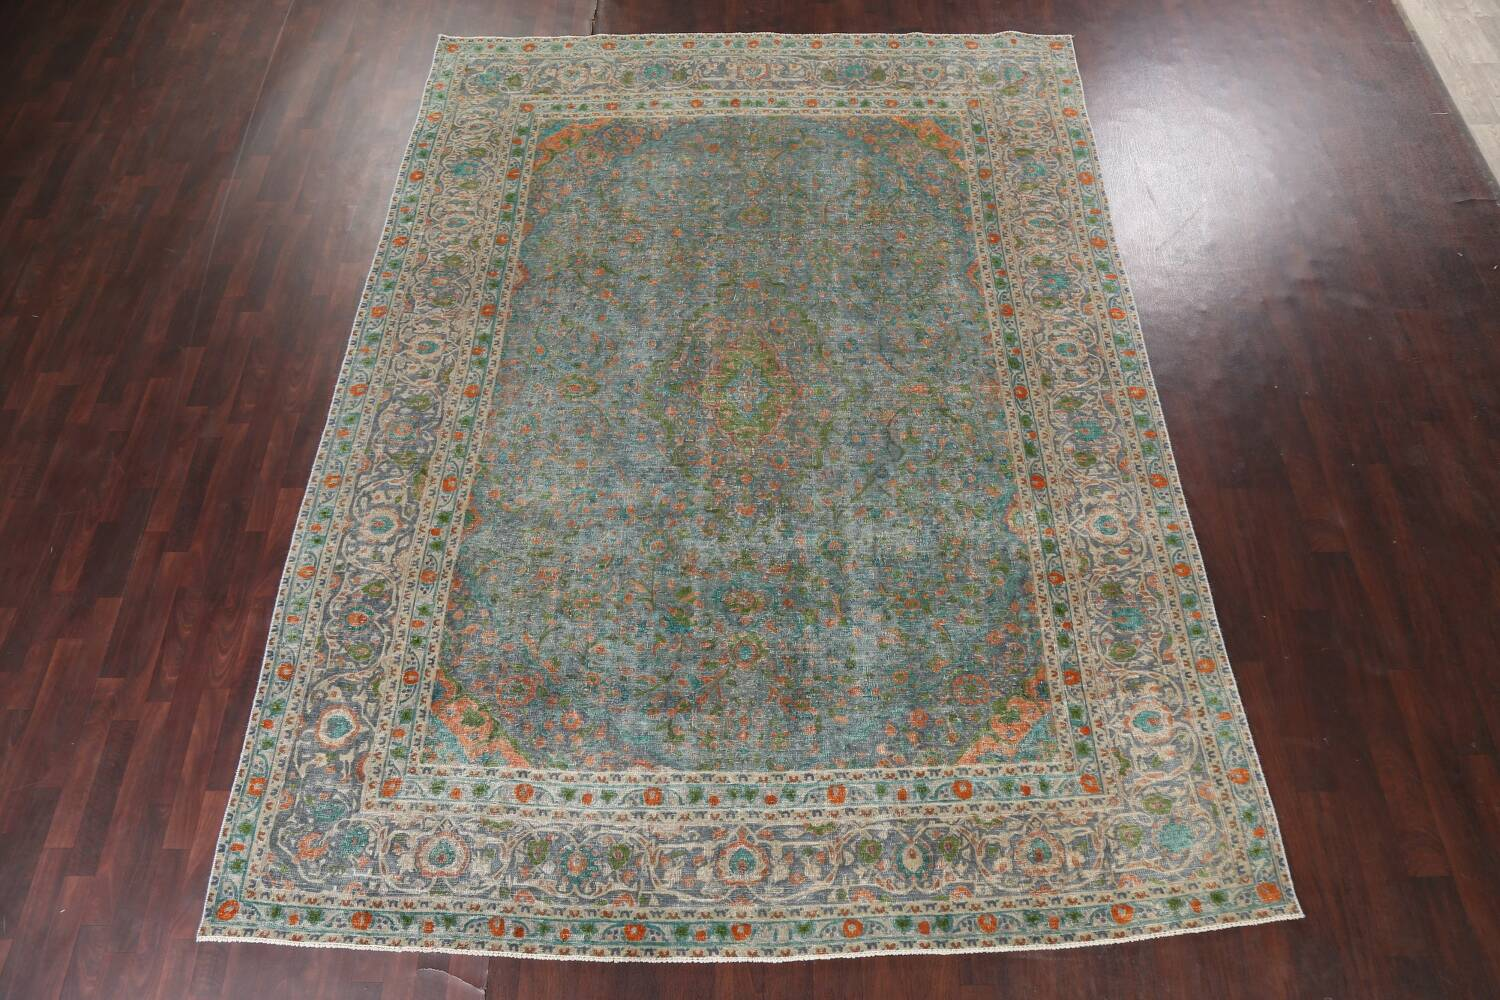 Antique Distressed Over-Dye Kashan Persian Area Rug 9x12 image 16